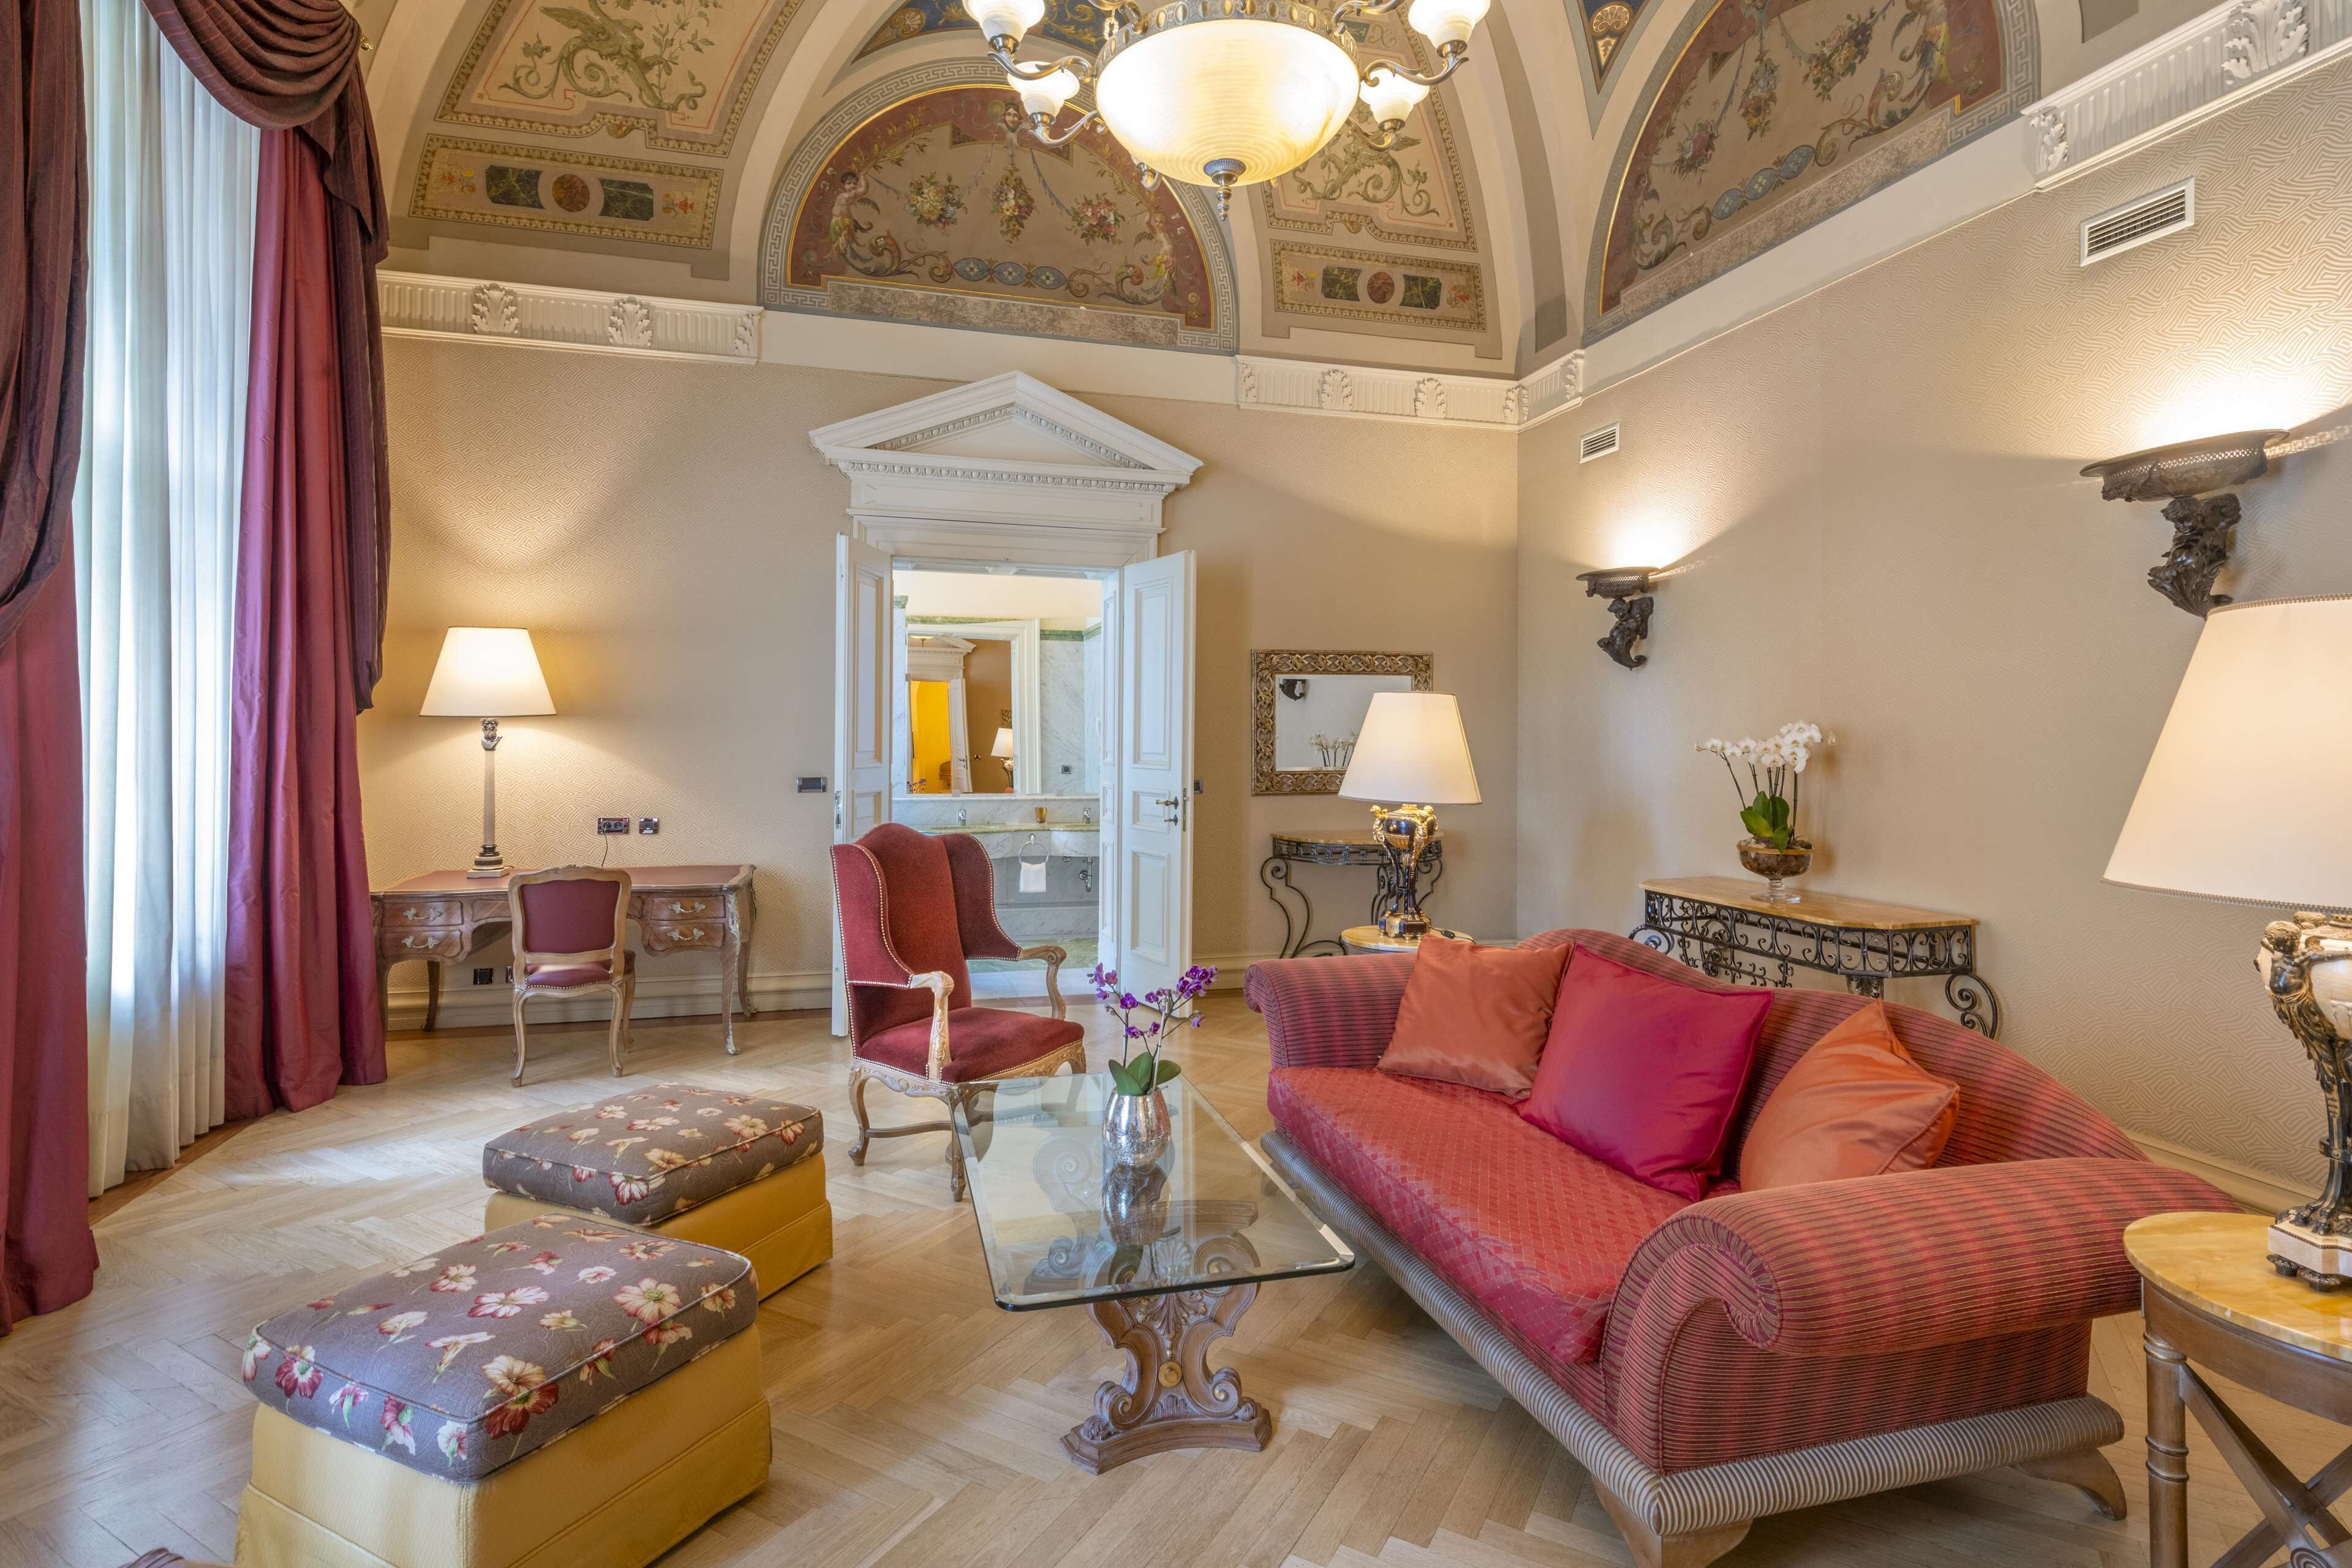 Courtesy of NH Collection Prague Carlo IV Hotel / Expedia